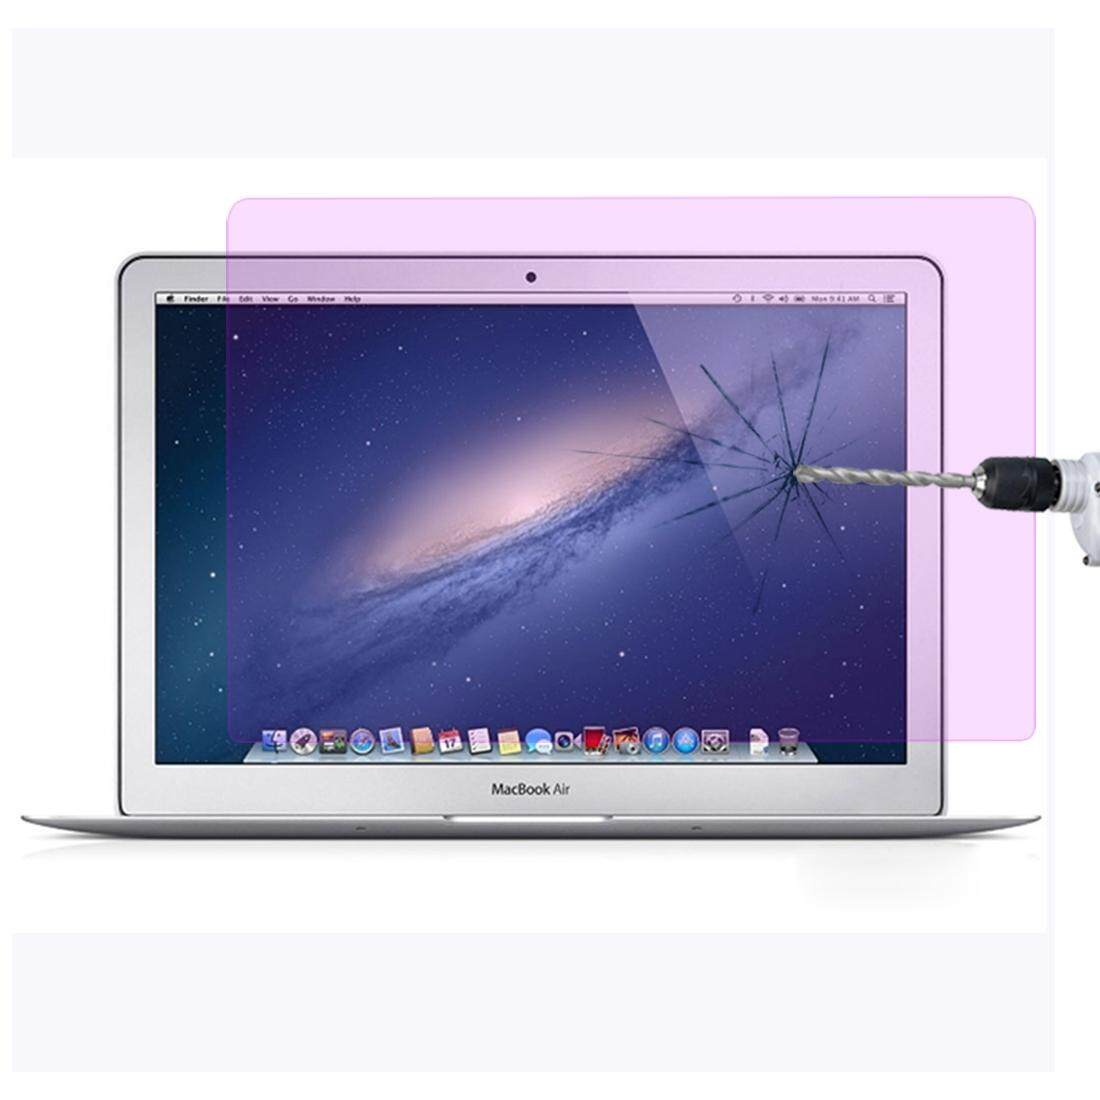 9H Surface Hardness Anti Blue-ray Explosion-proof Tempered Glass Film for MacBook Air 11.6 inch (A1370 / A1465) Malaysia